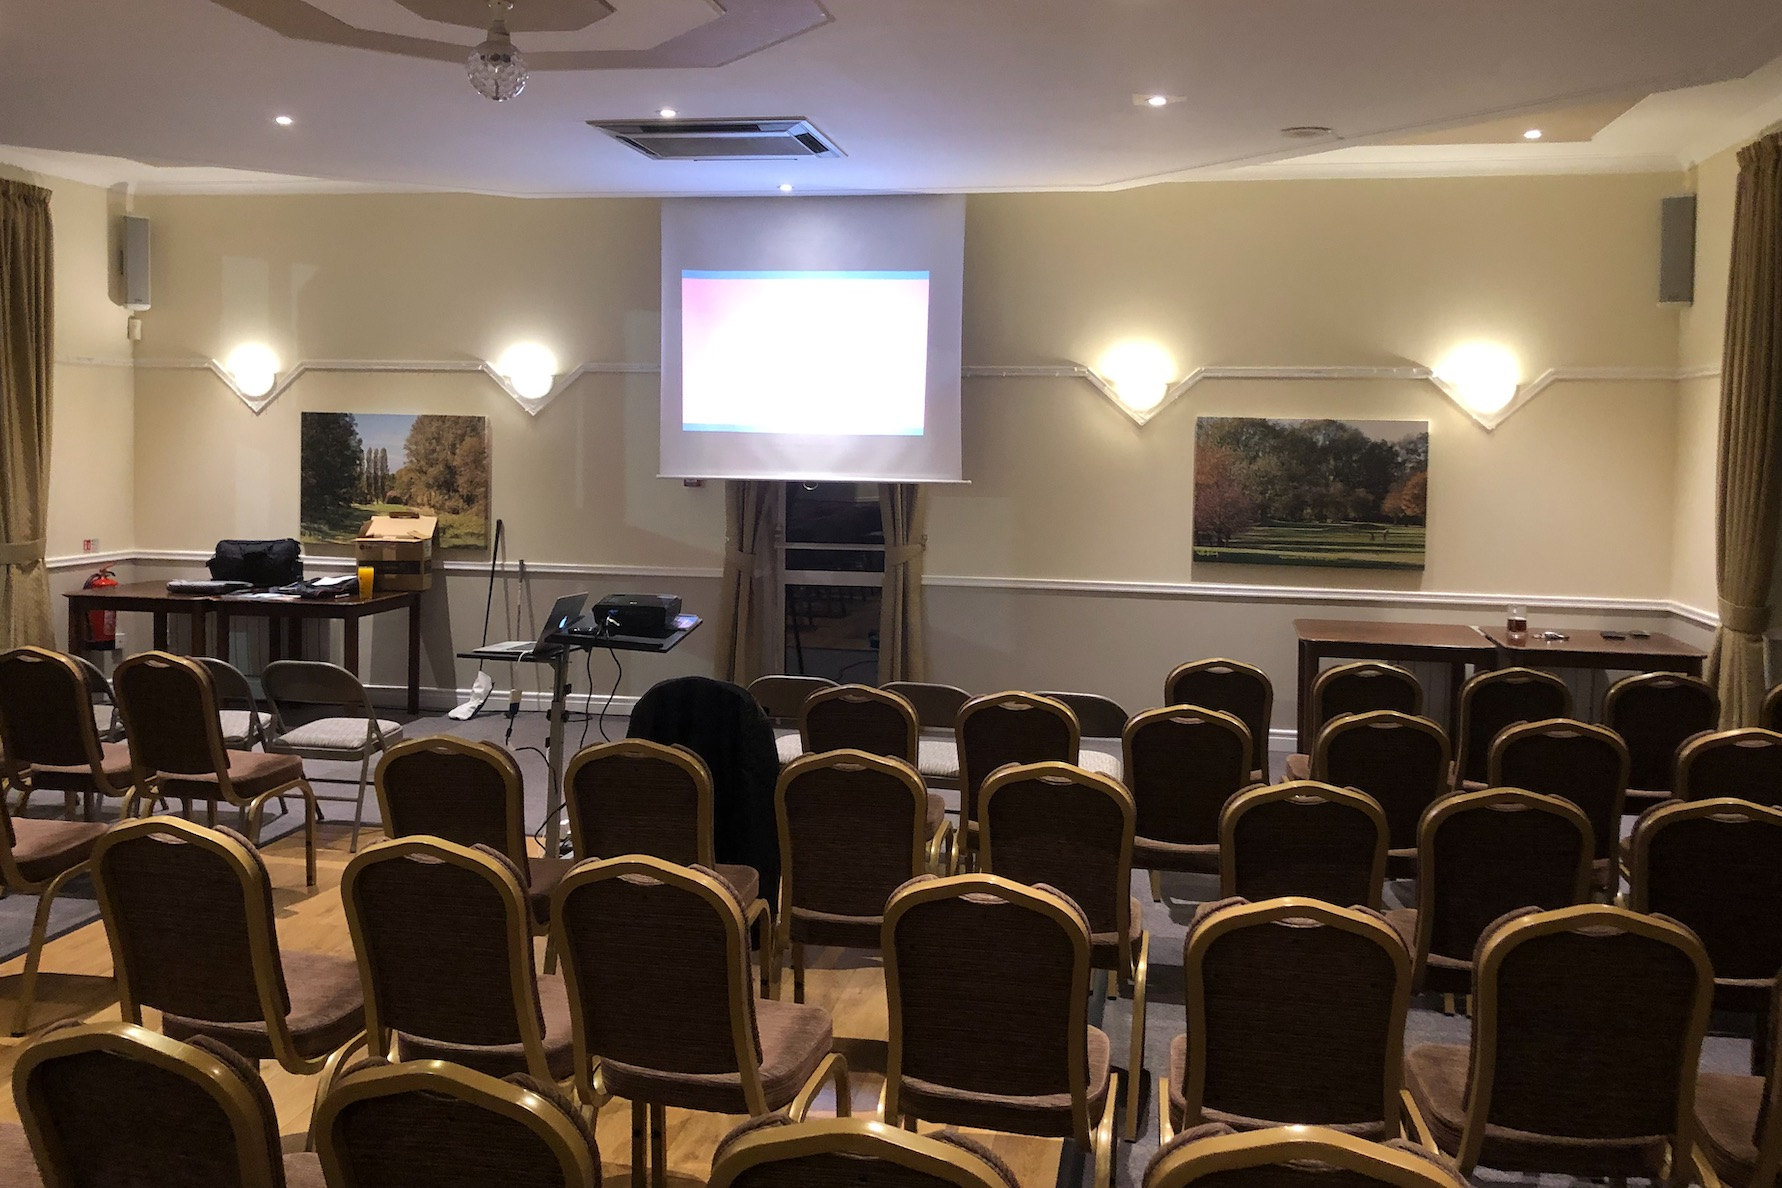 The function Room set for a meeting